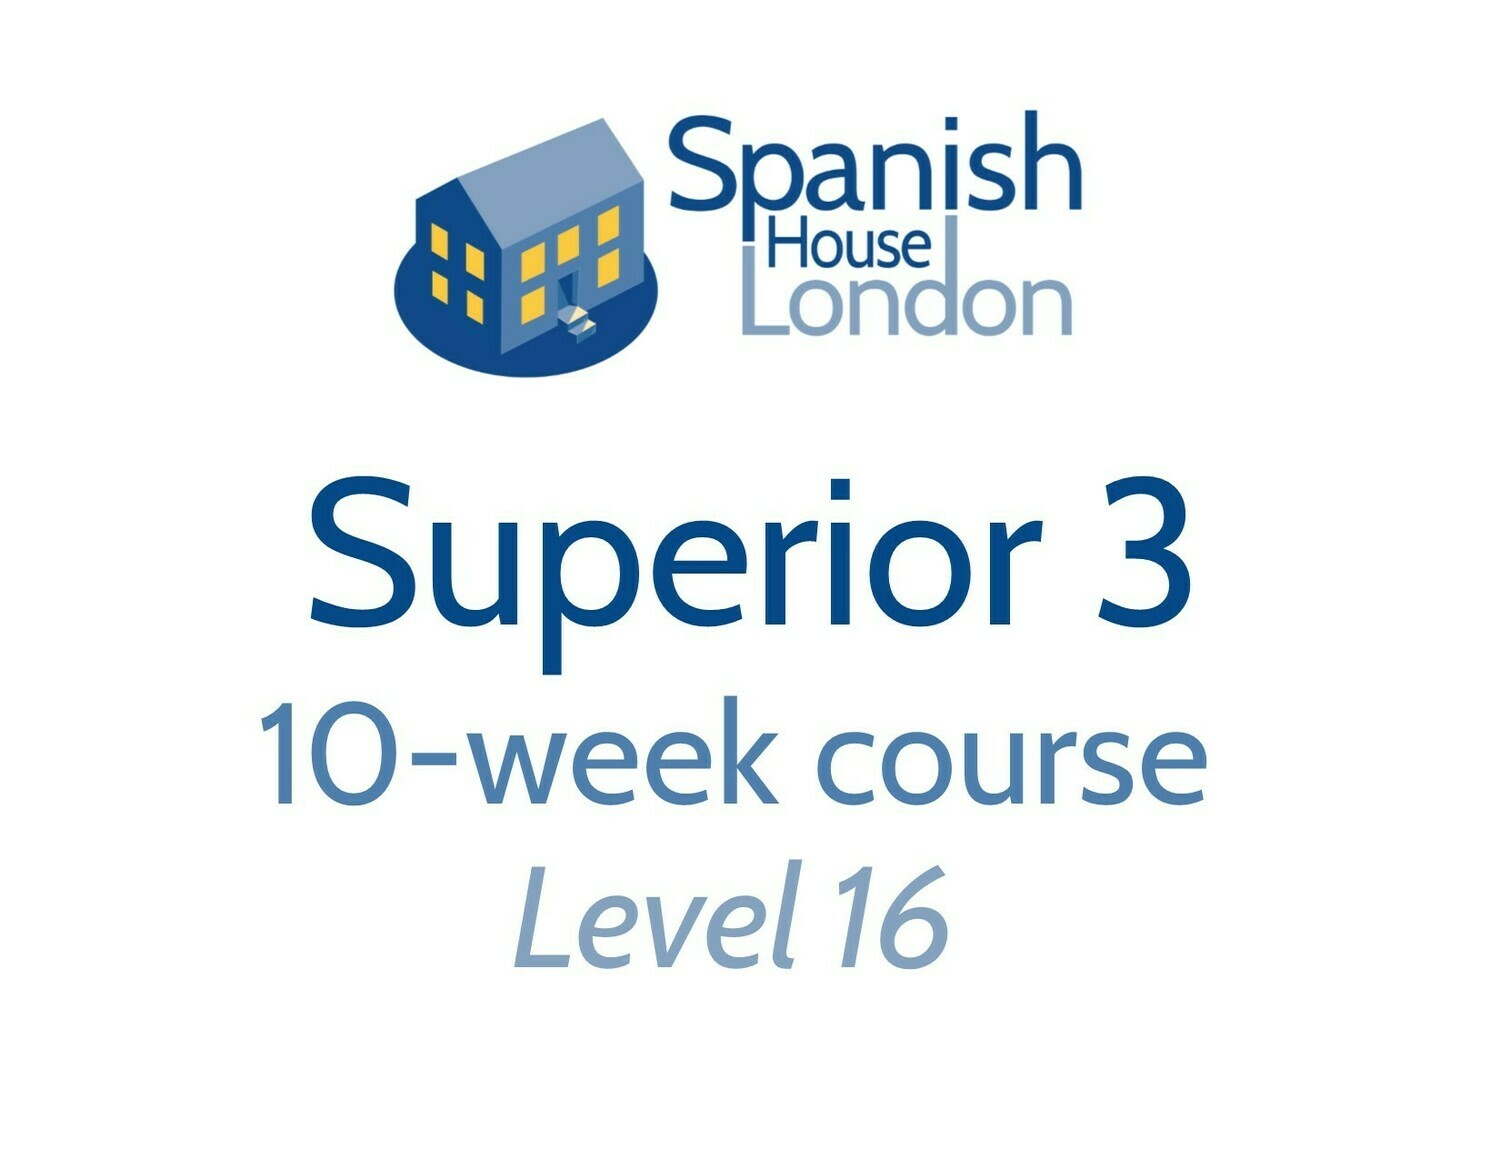 Superior 3 Course starting on 22nd October at 7.30pm in Clapham North